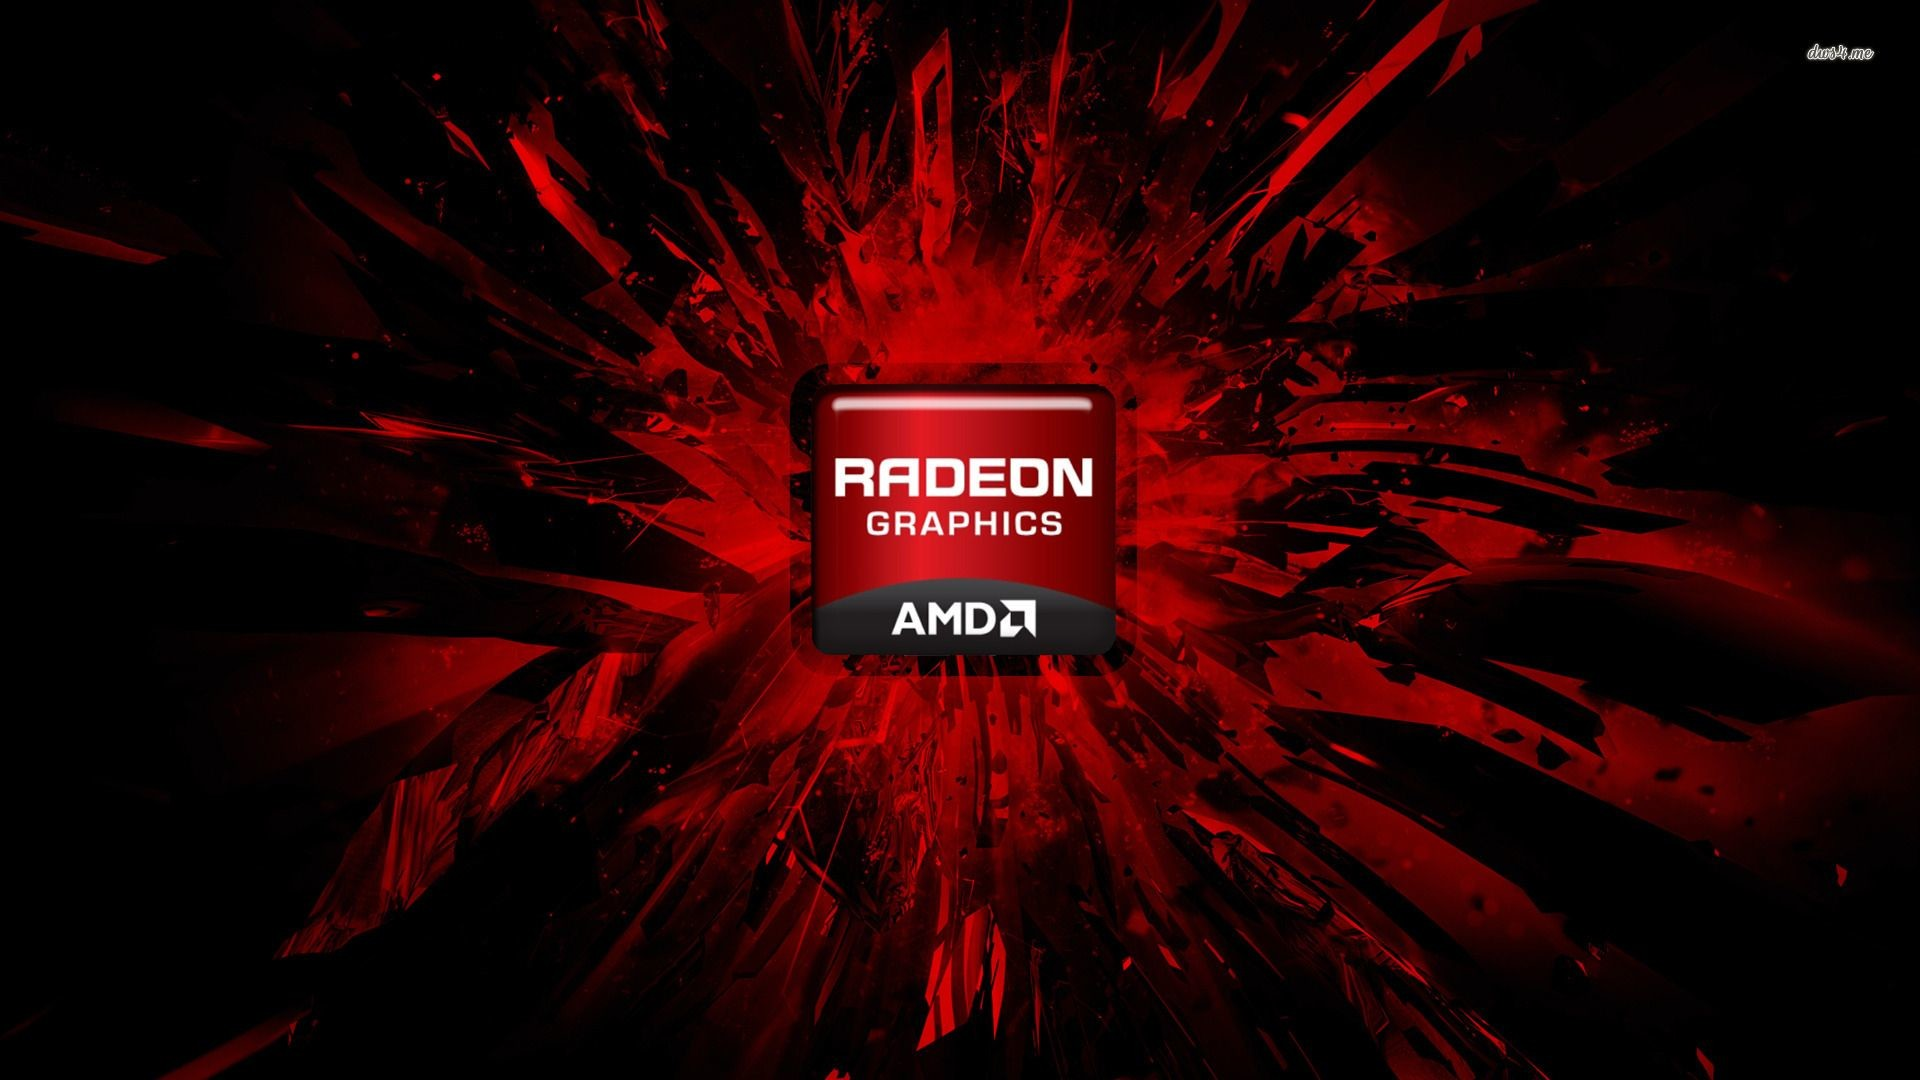 Amd Radeon Wallpapers 79 Images